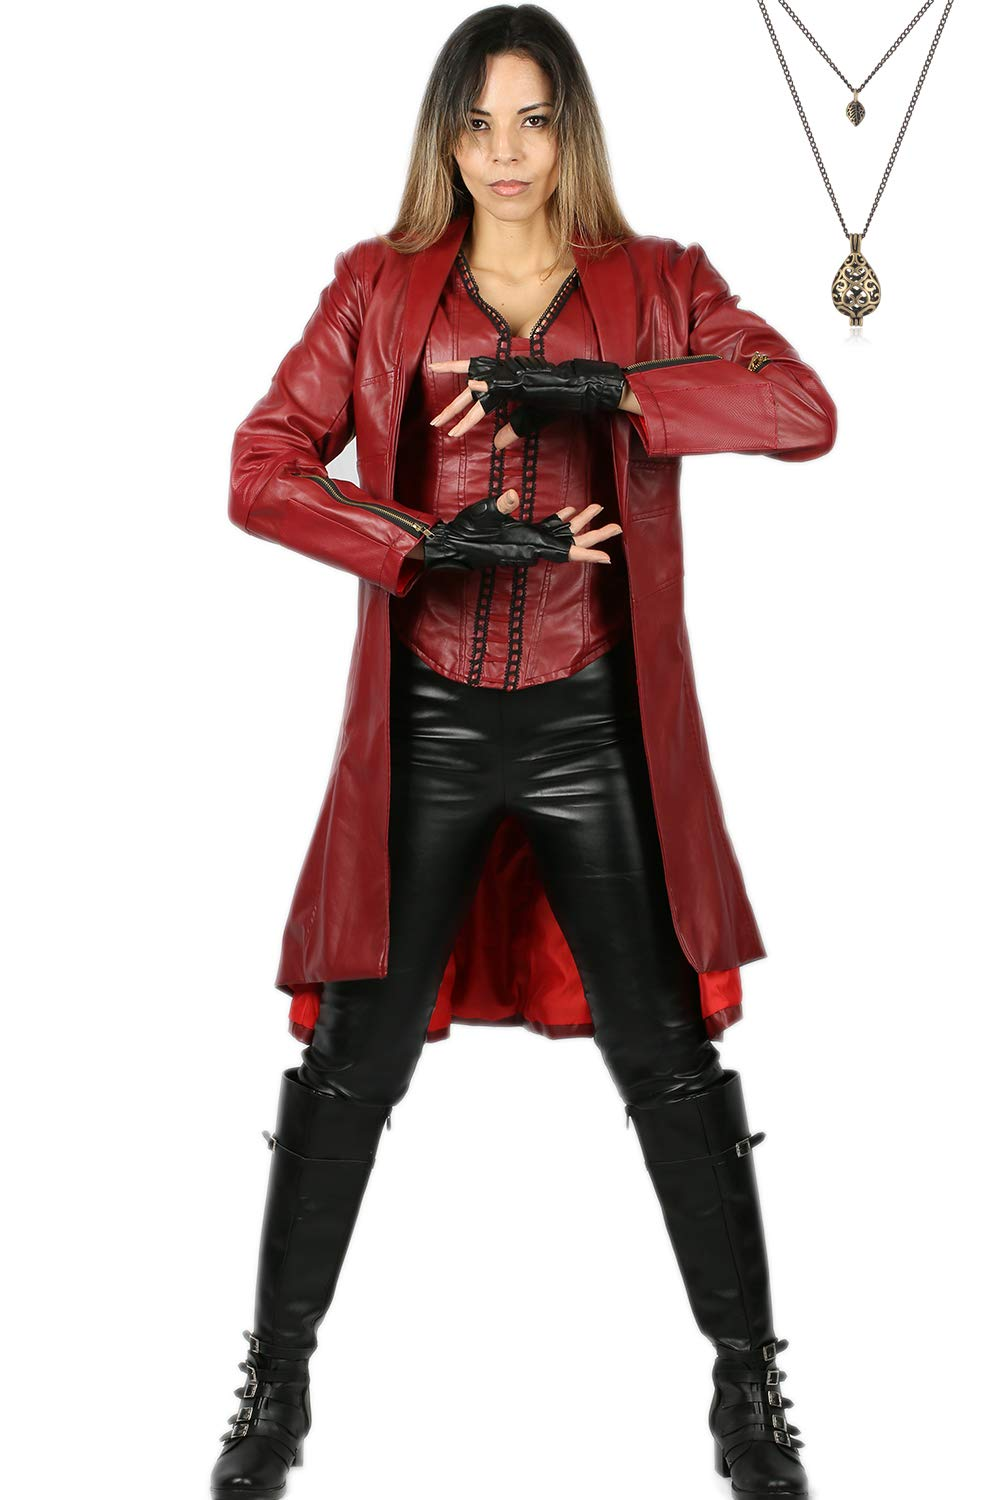 Xcoser Scarlet Witch Costume for Wanda Maximoff Hallloween Cosplay XL